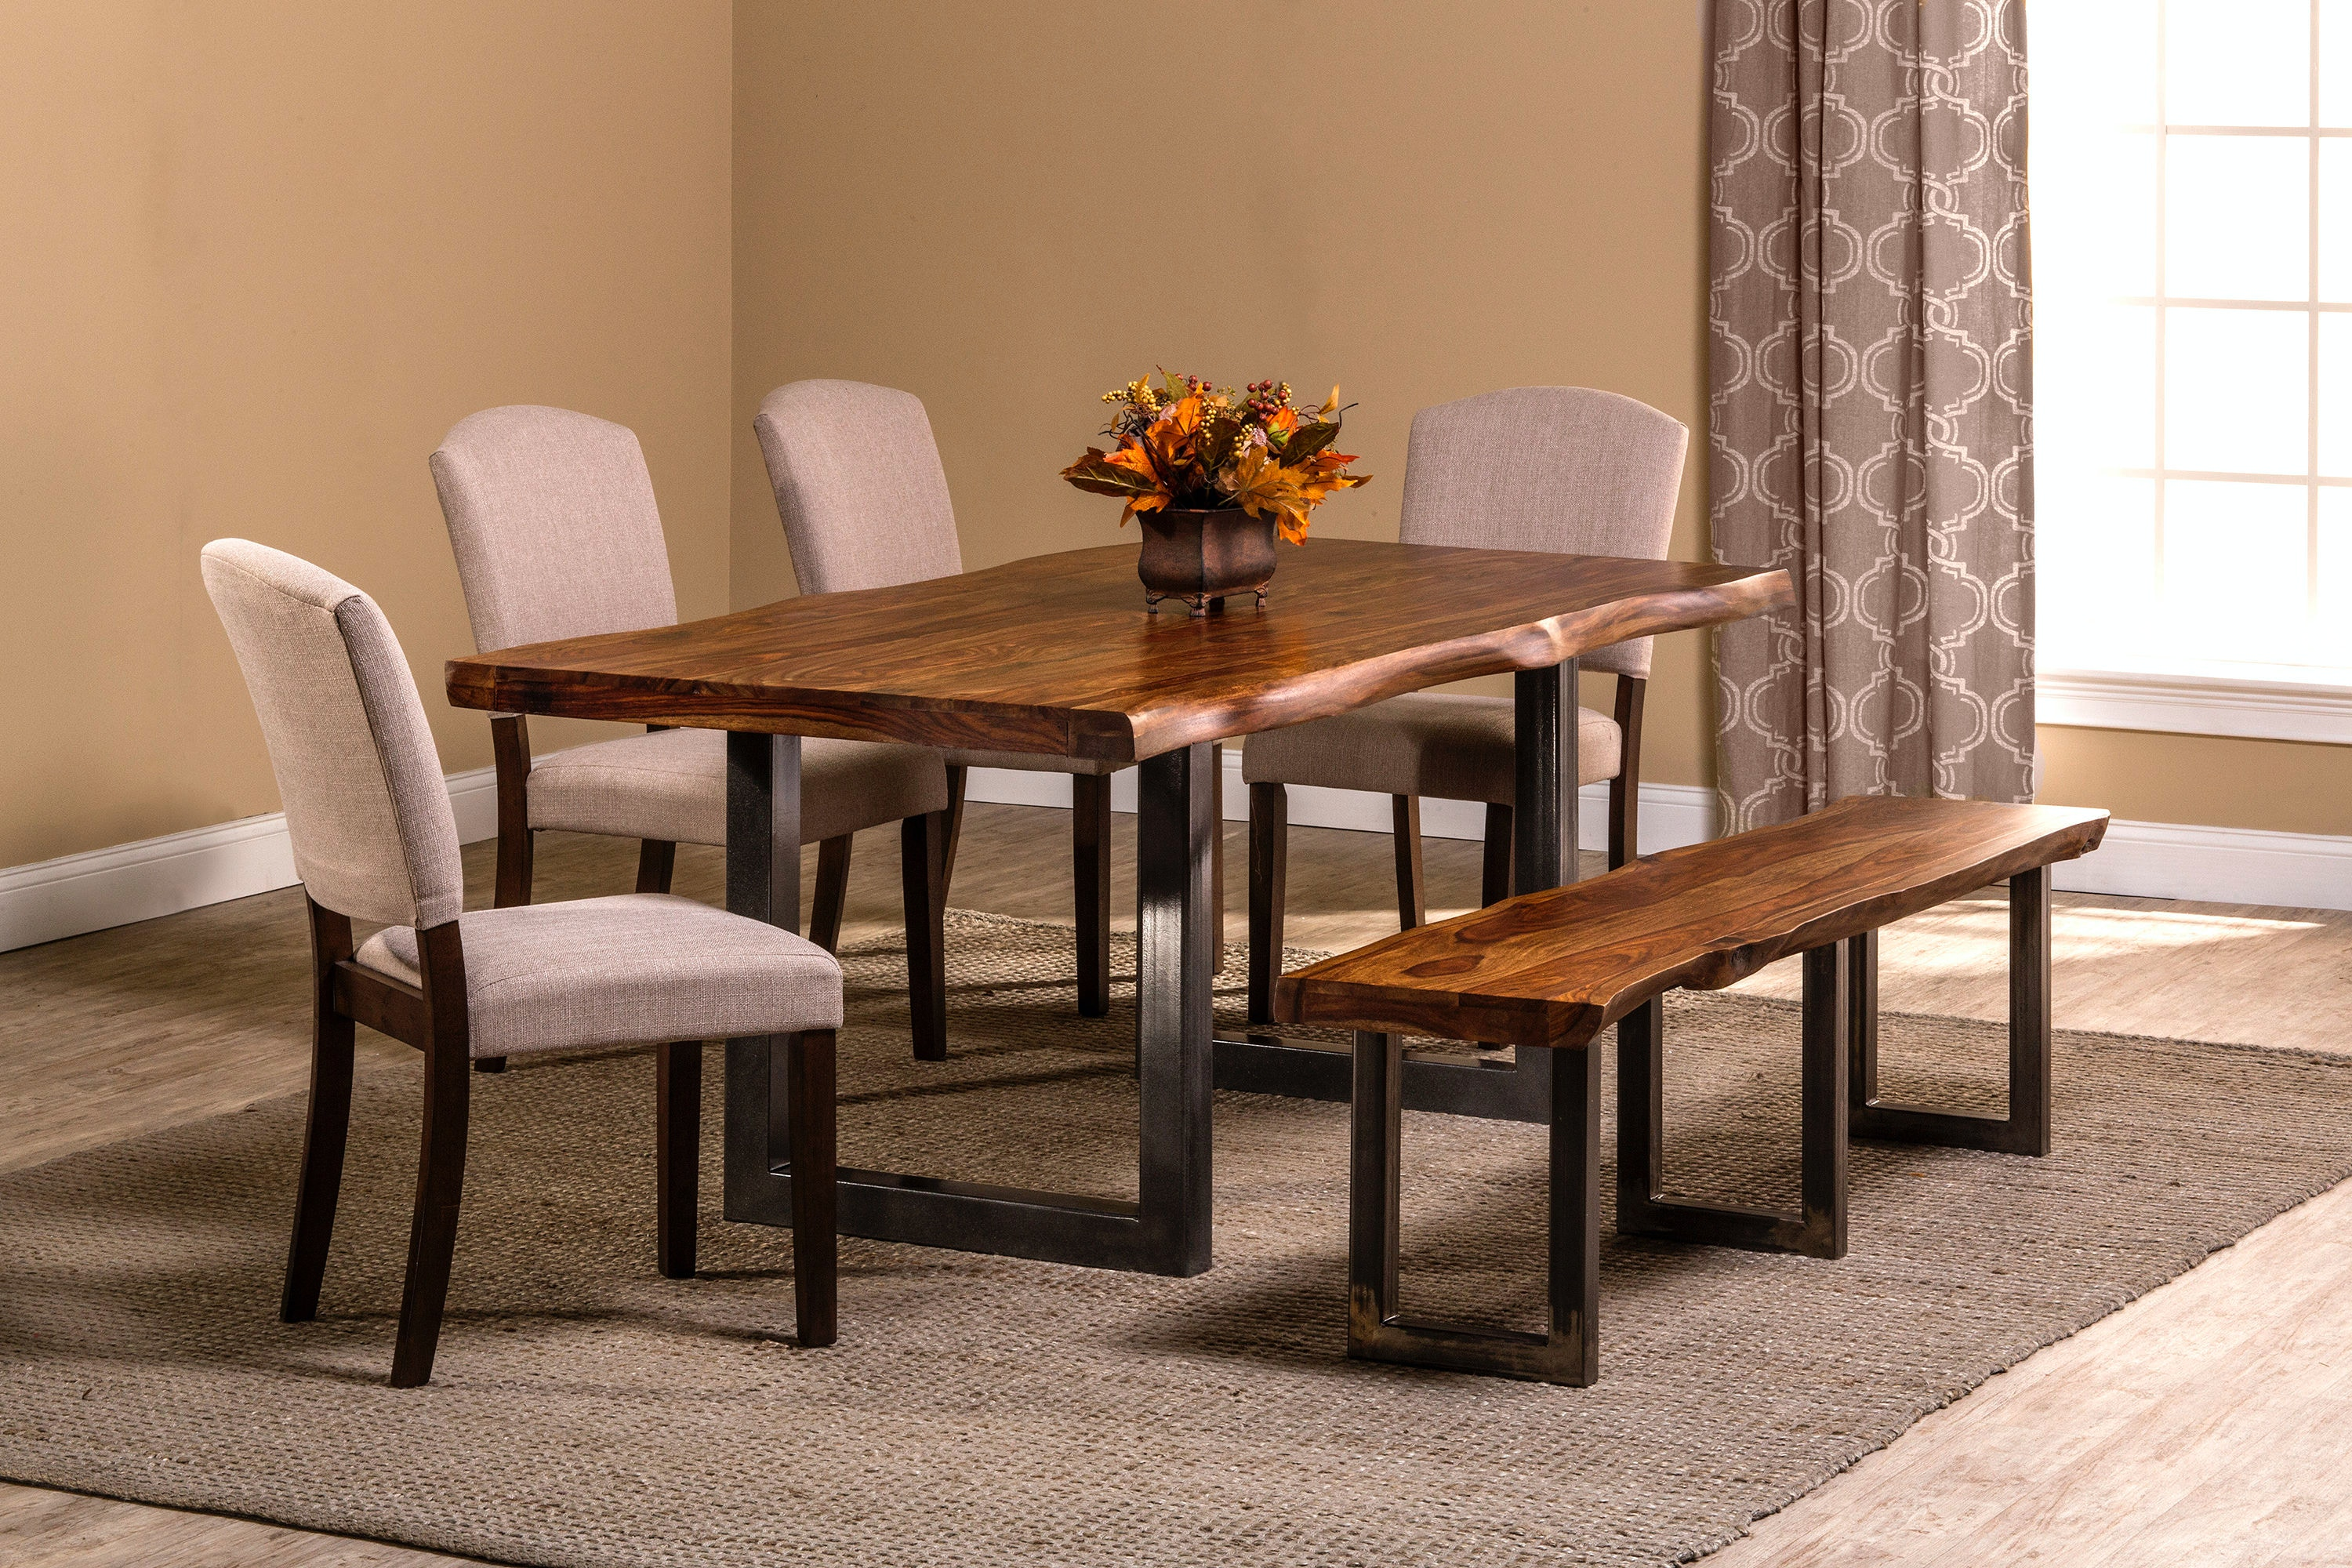 Hillsdale Furniture Emerson 6 Piece Rectangle Dining Set With One (1) Bench  And ...